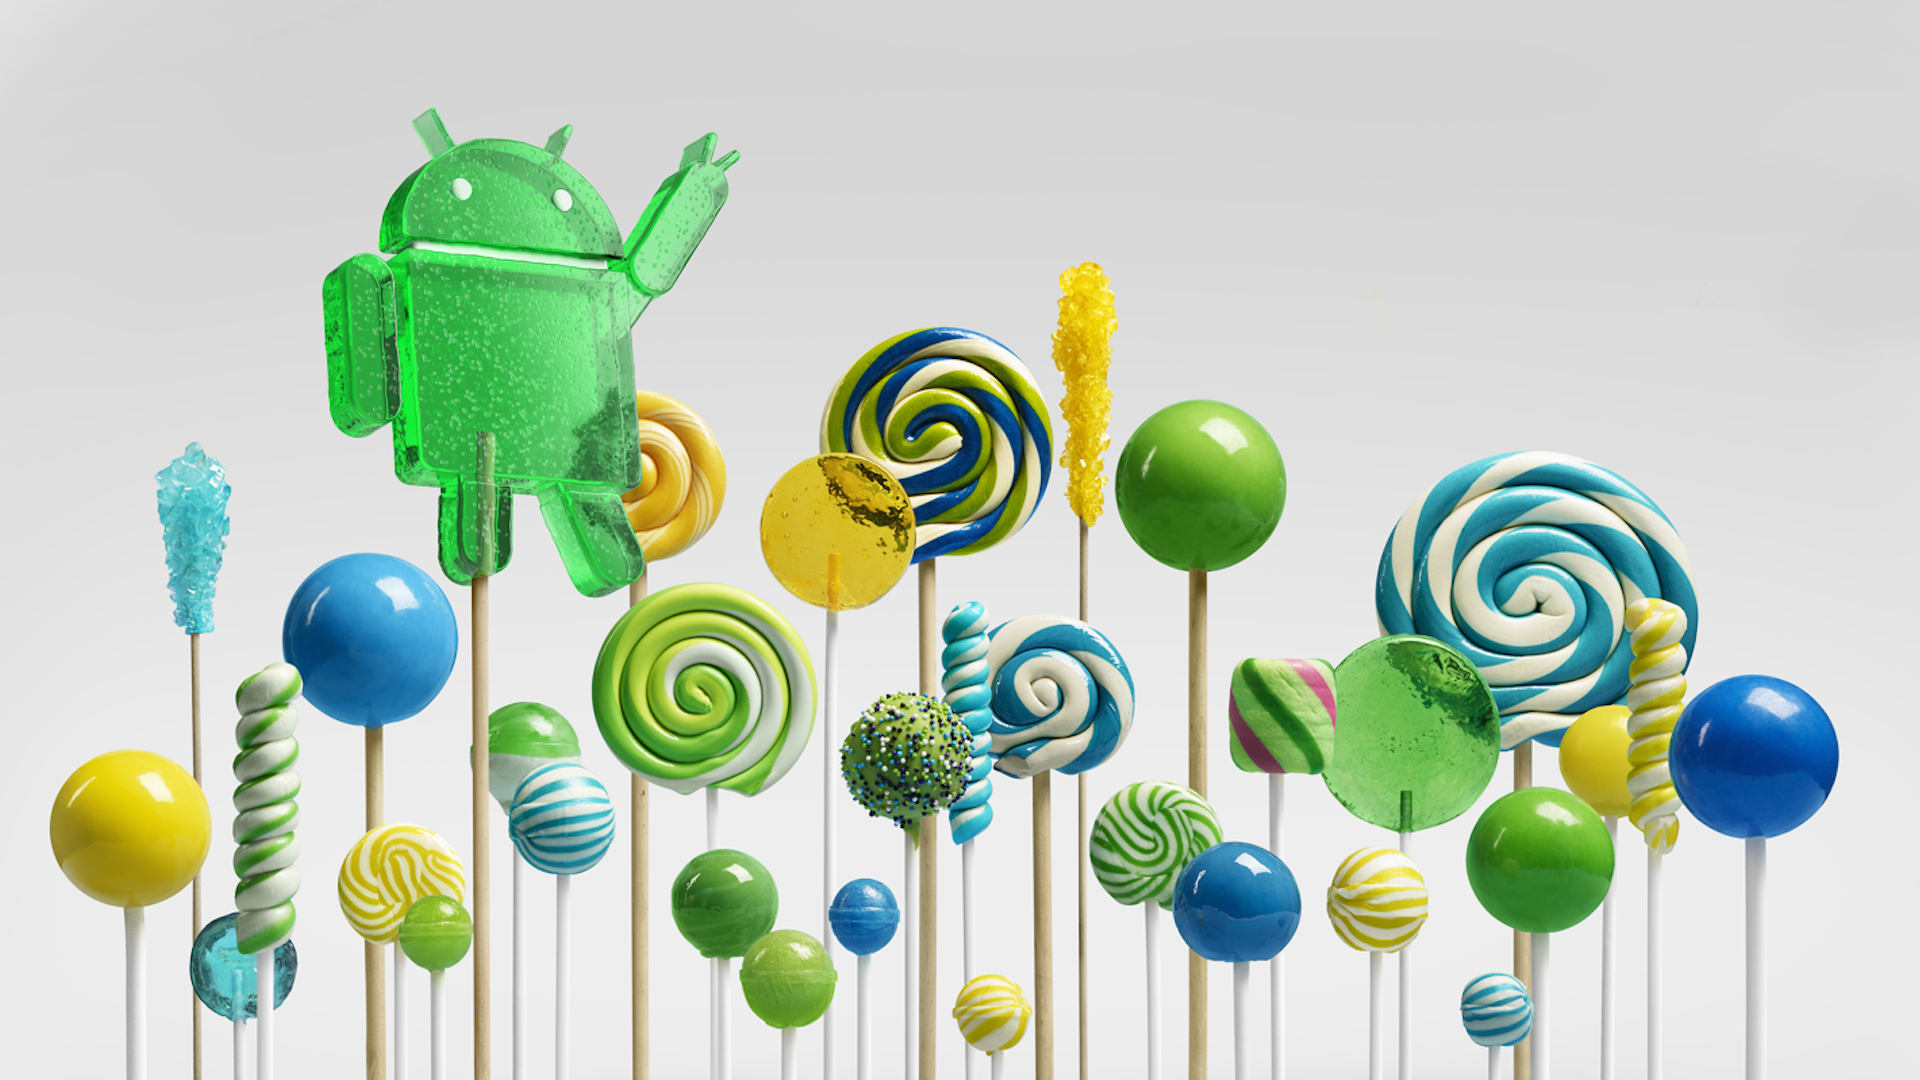 hot-android-wallpaper